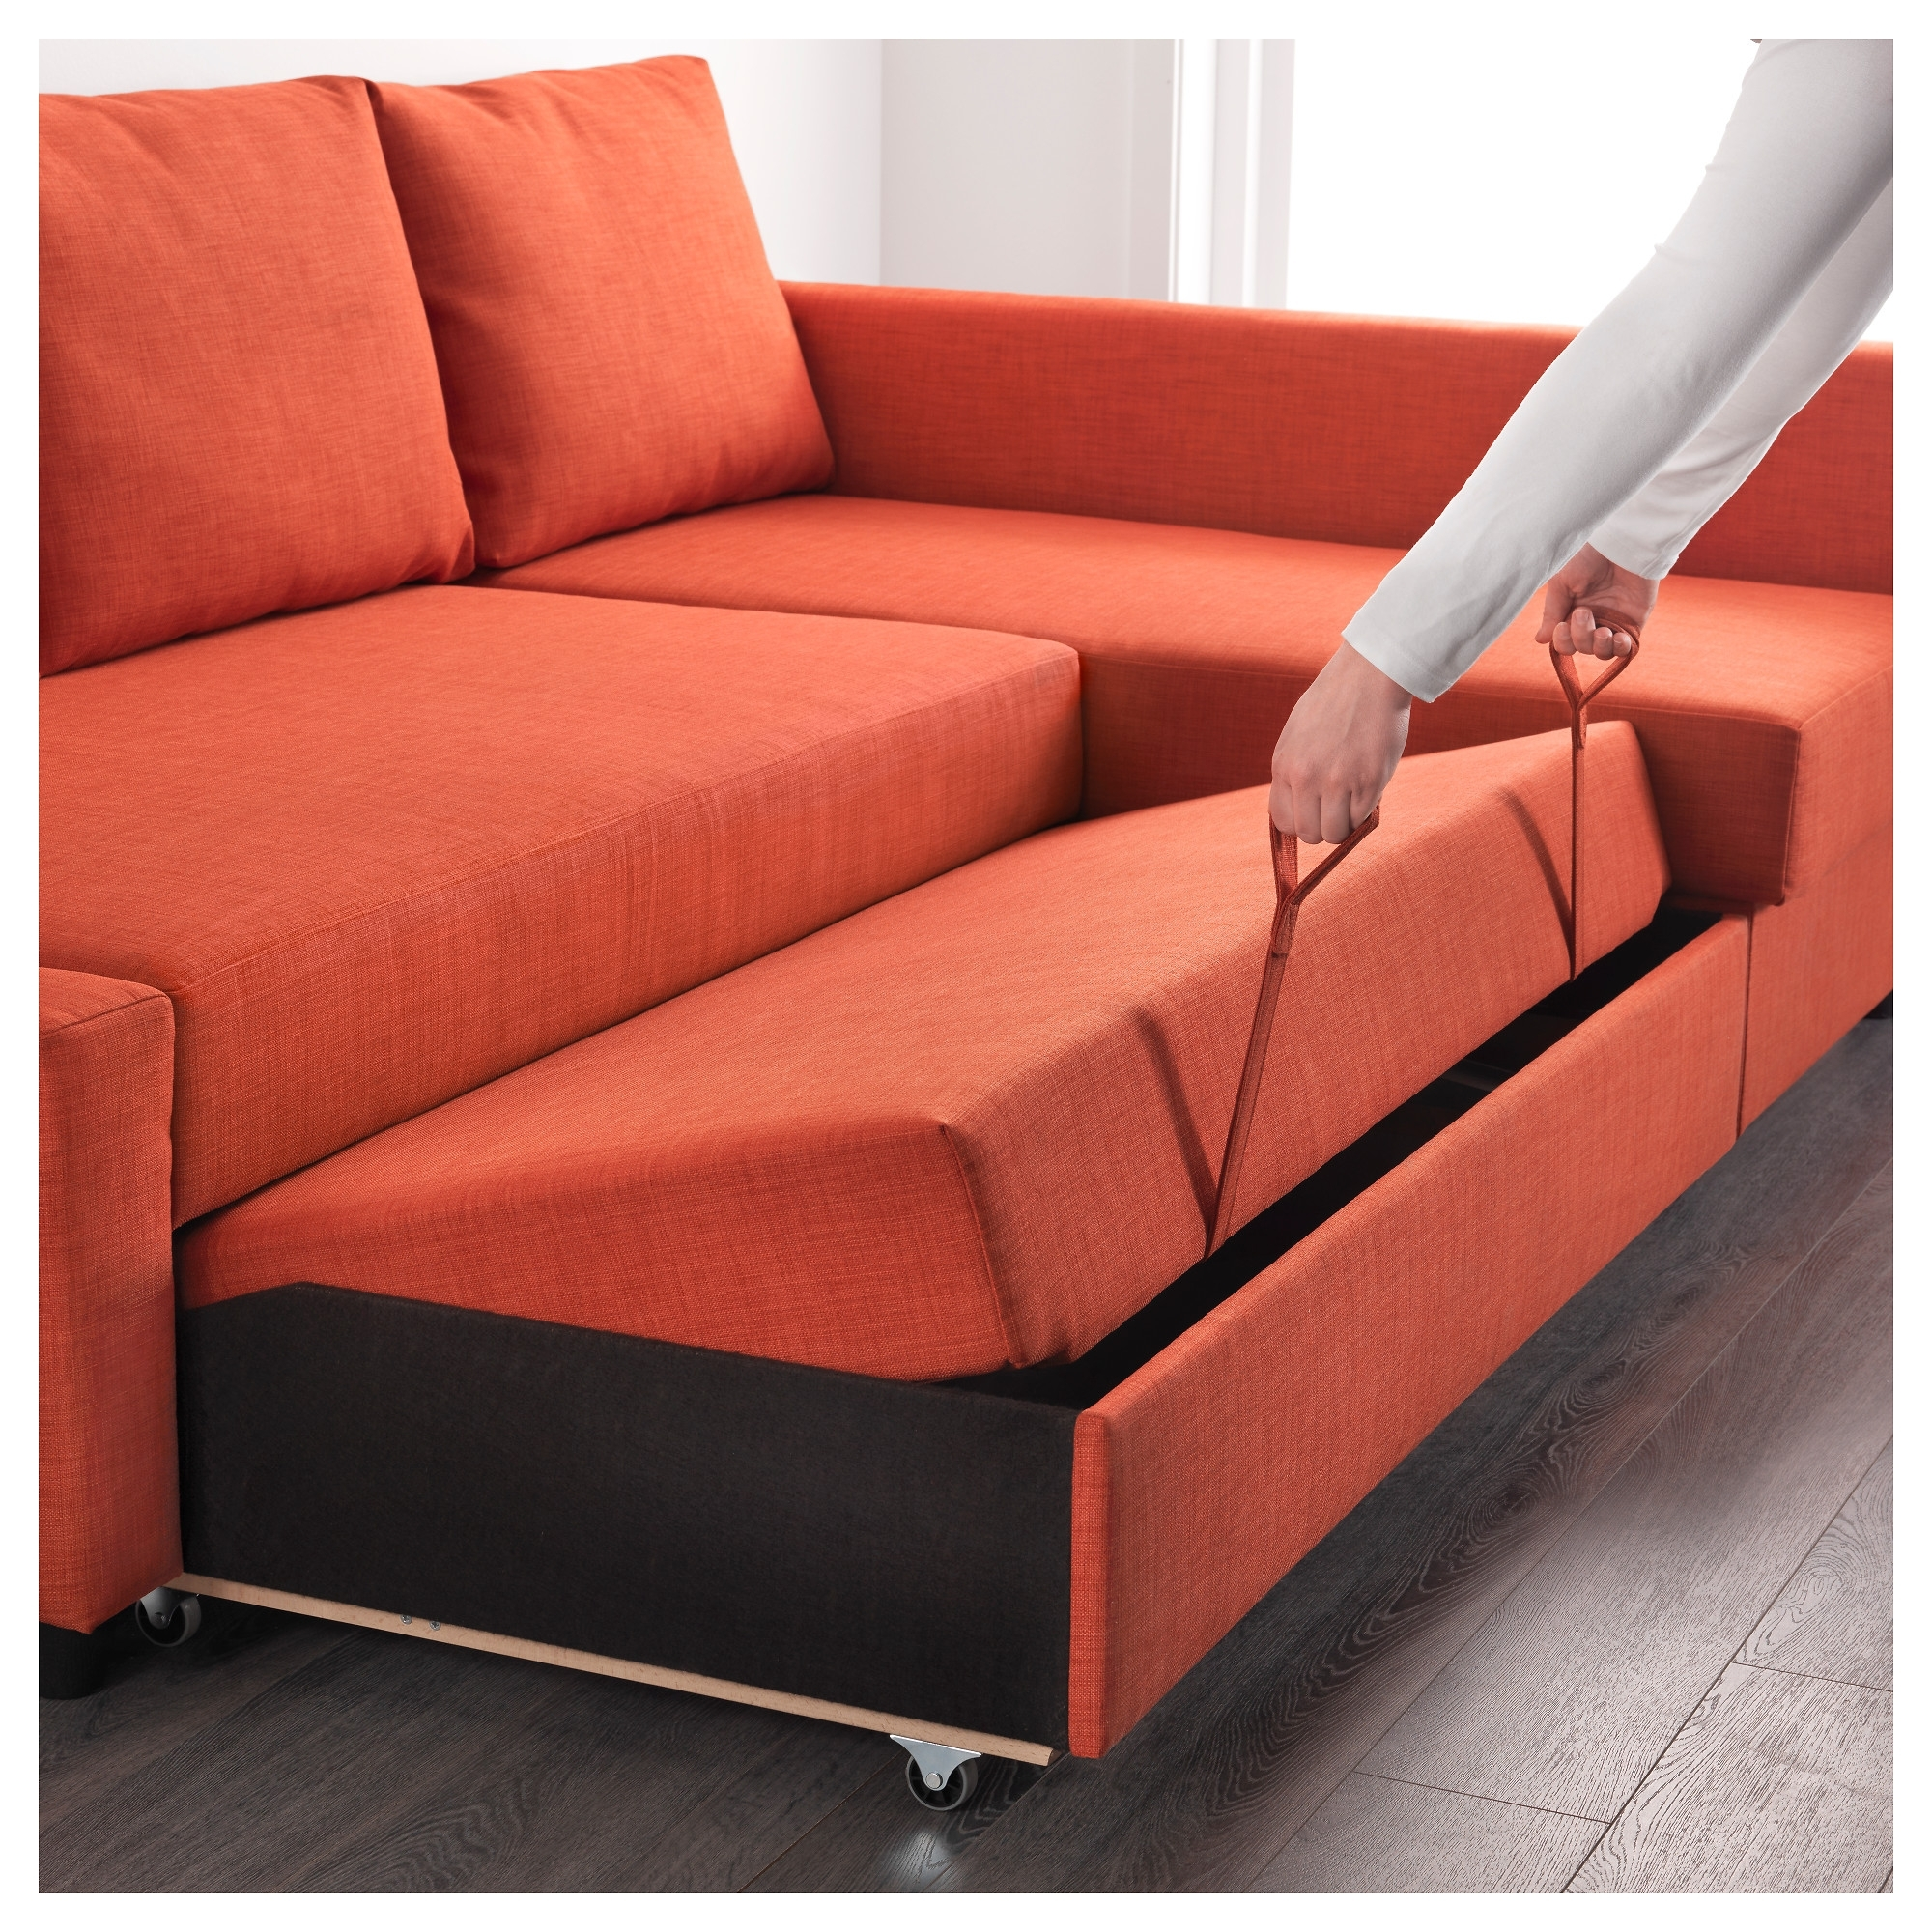 Ikea Corner Sofas With Storage Regarding Current Friheten Corner Sofa Bed With Storage Skiftebo Dark Orange – Ikea (View 7 of 20)